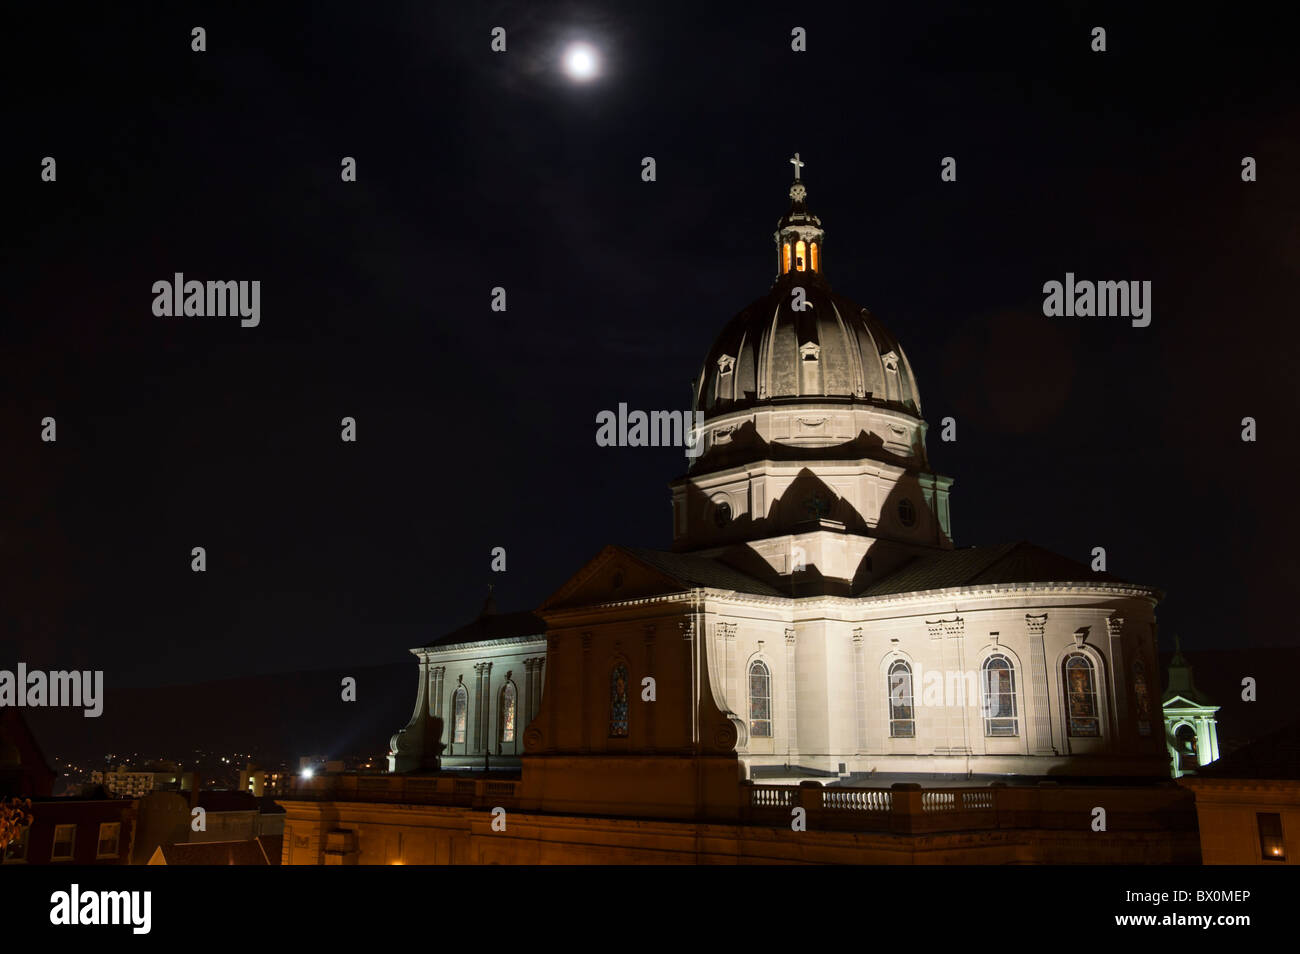 Cathedral church dome under full moon, photographed at night with rotunda and cross lit, Altoona, PA, USA. - Stock Image